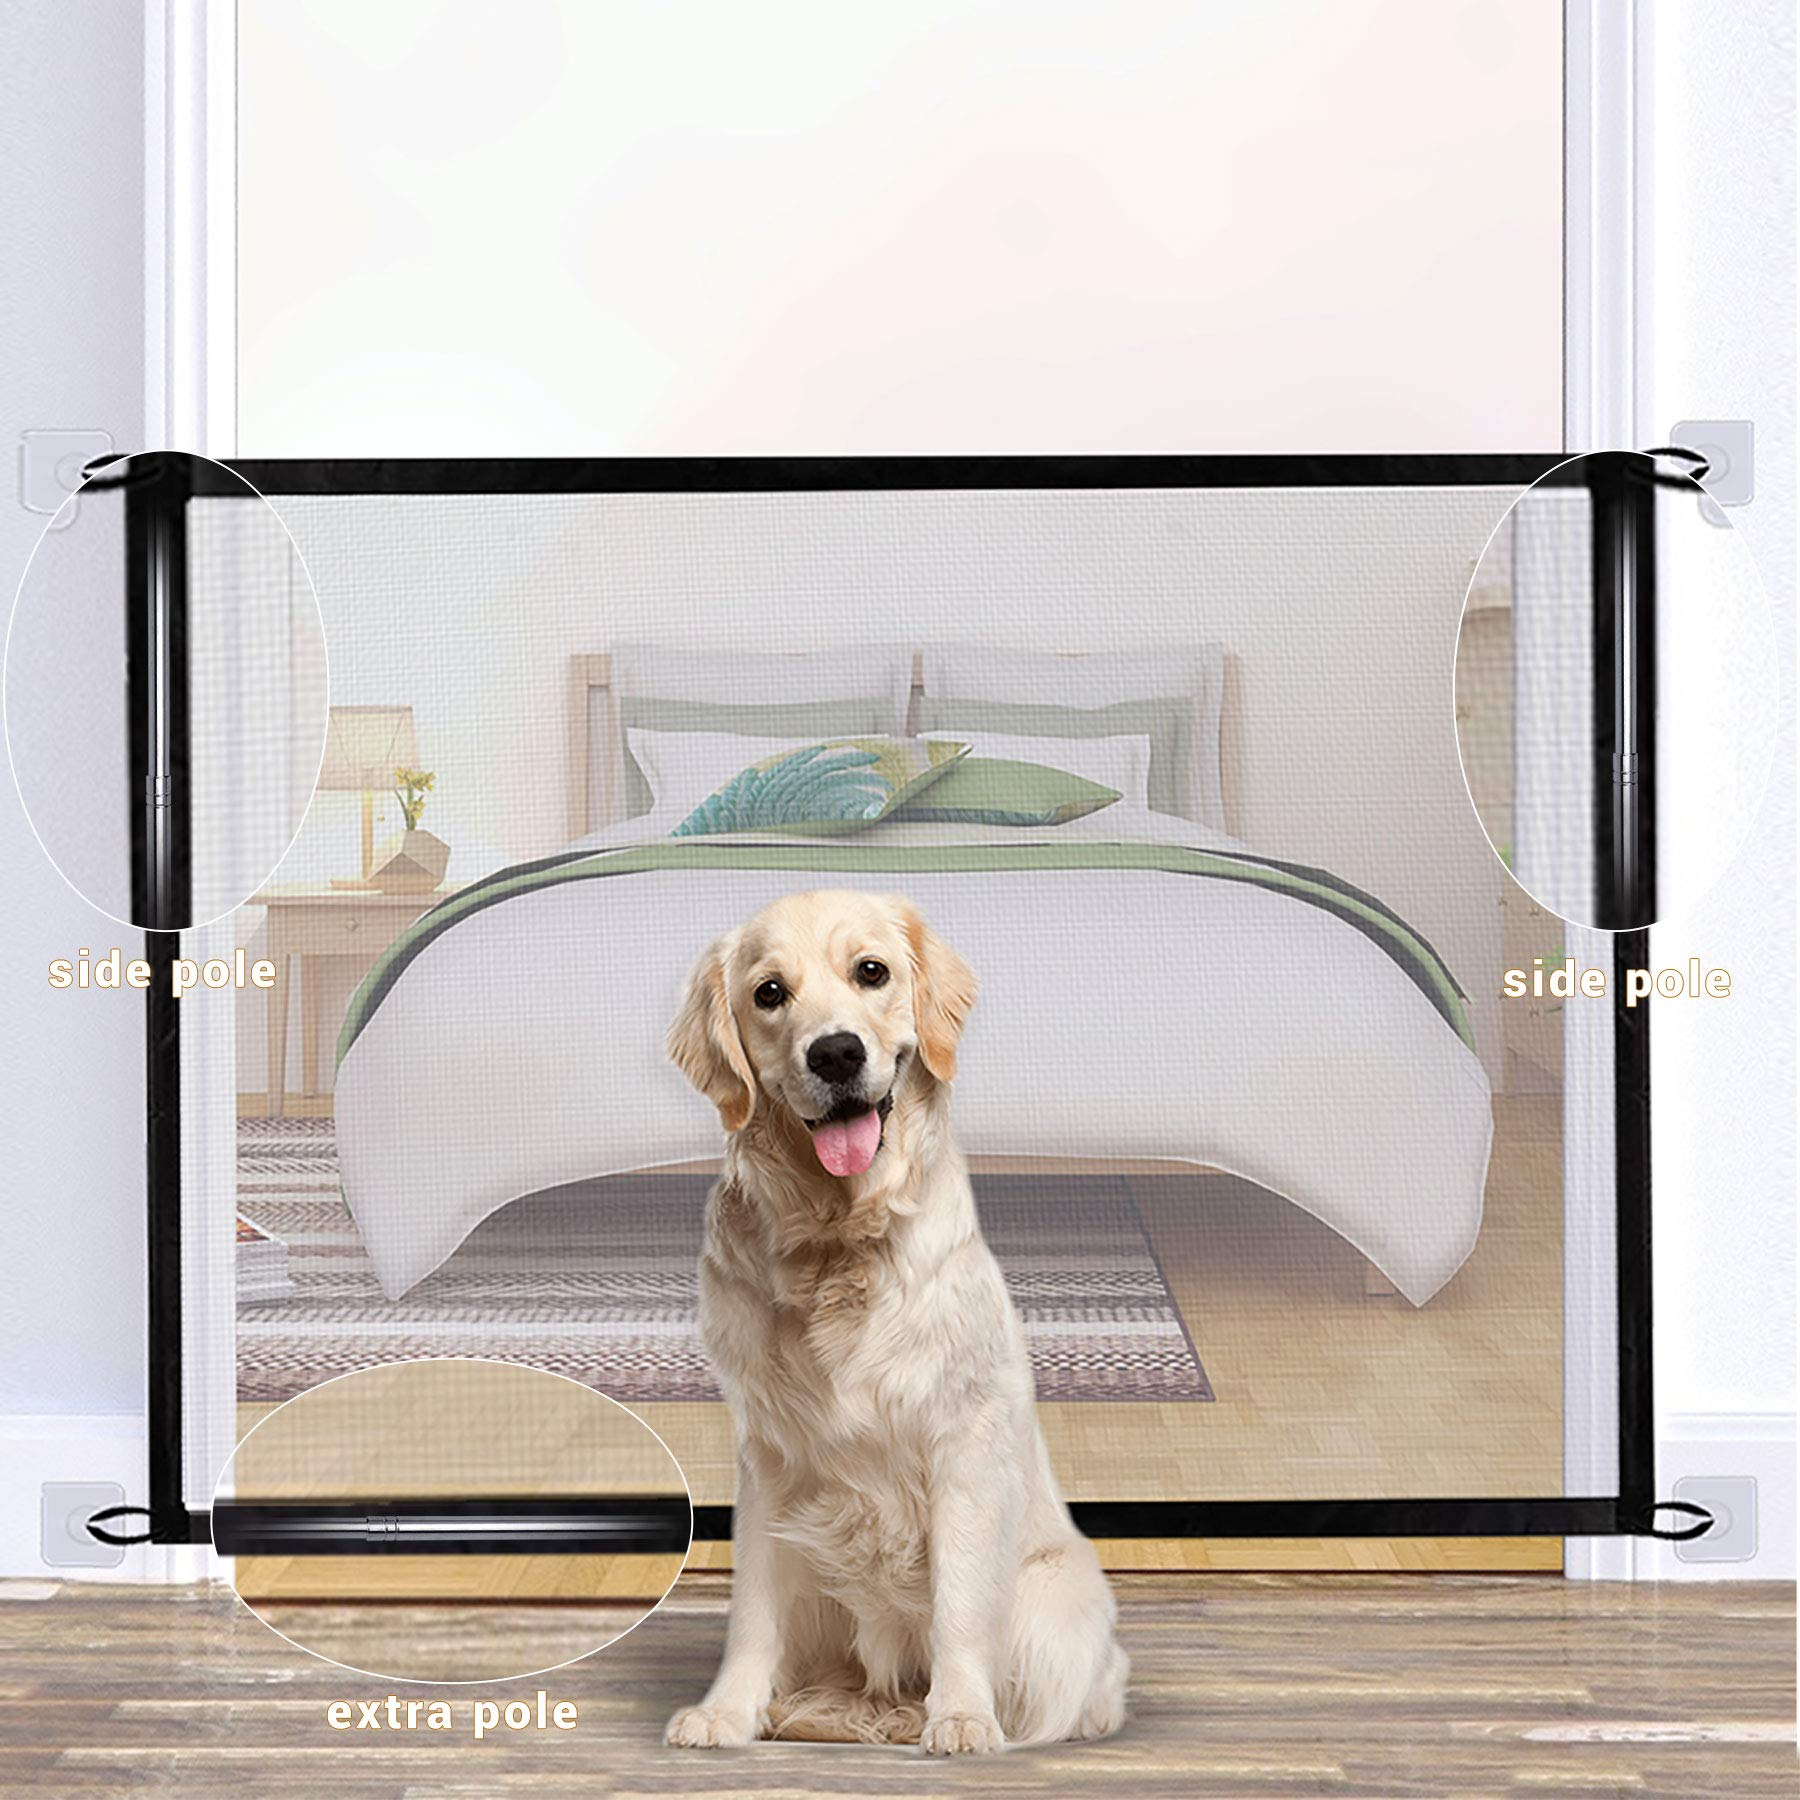 U-picks Magic Gates for Dogs, Portable Mesh Gate with Three Poles Stair Gate Safety Gate for Pets and Babies - 110x72cm